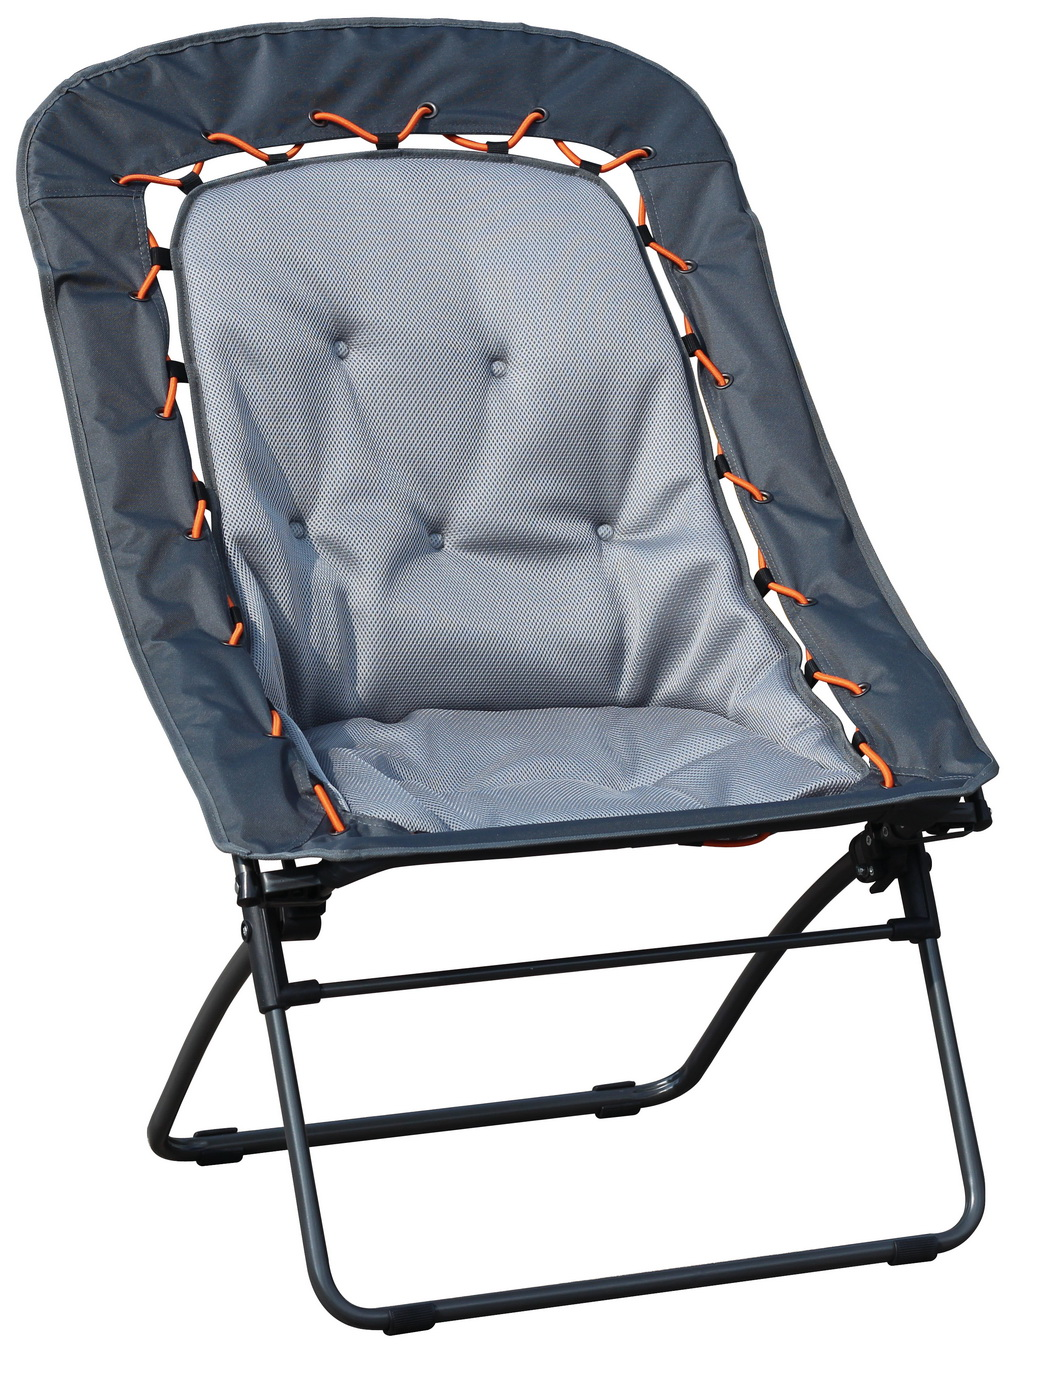 Kmart Lawn Chairs Northwest Territory Oversize Bungee Chair